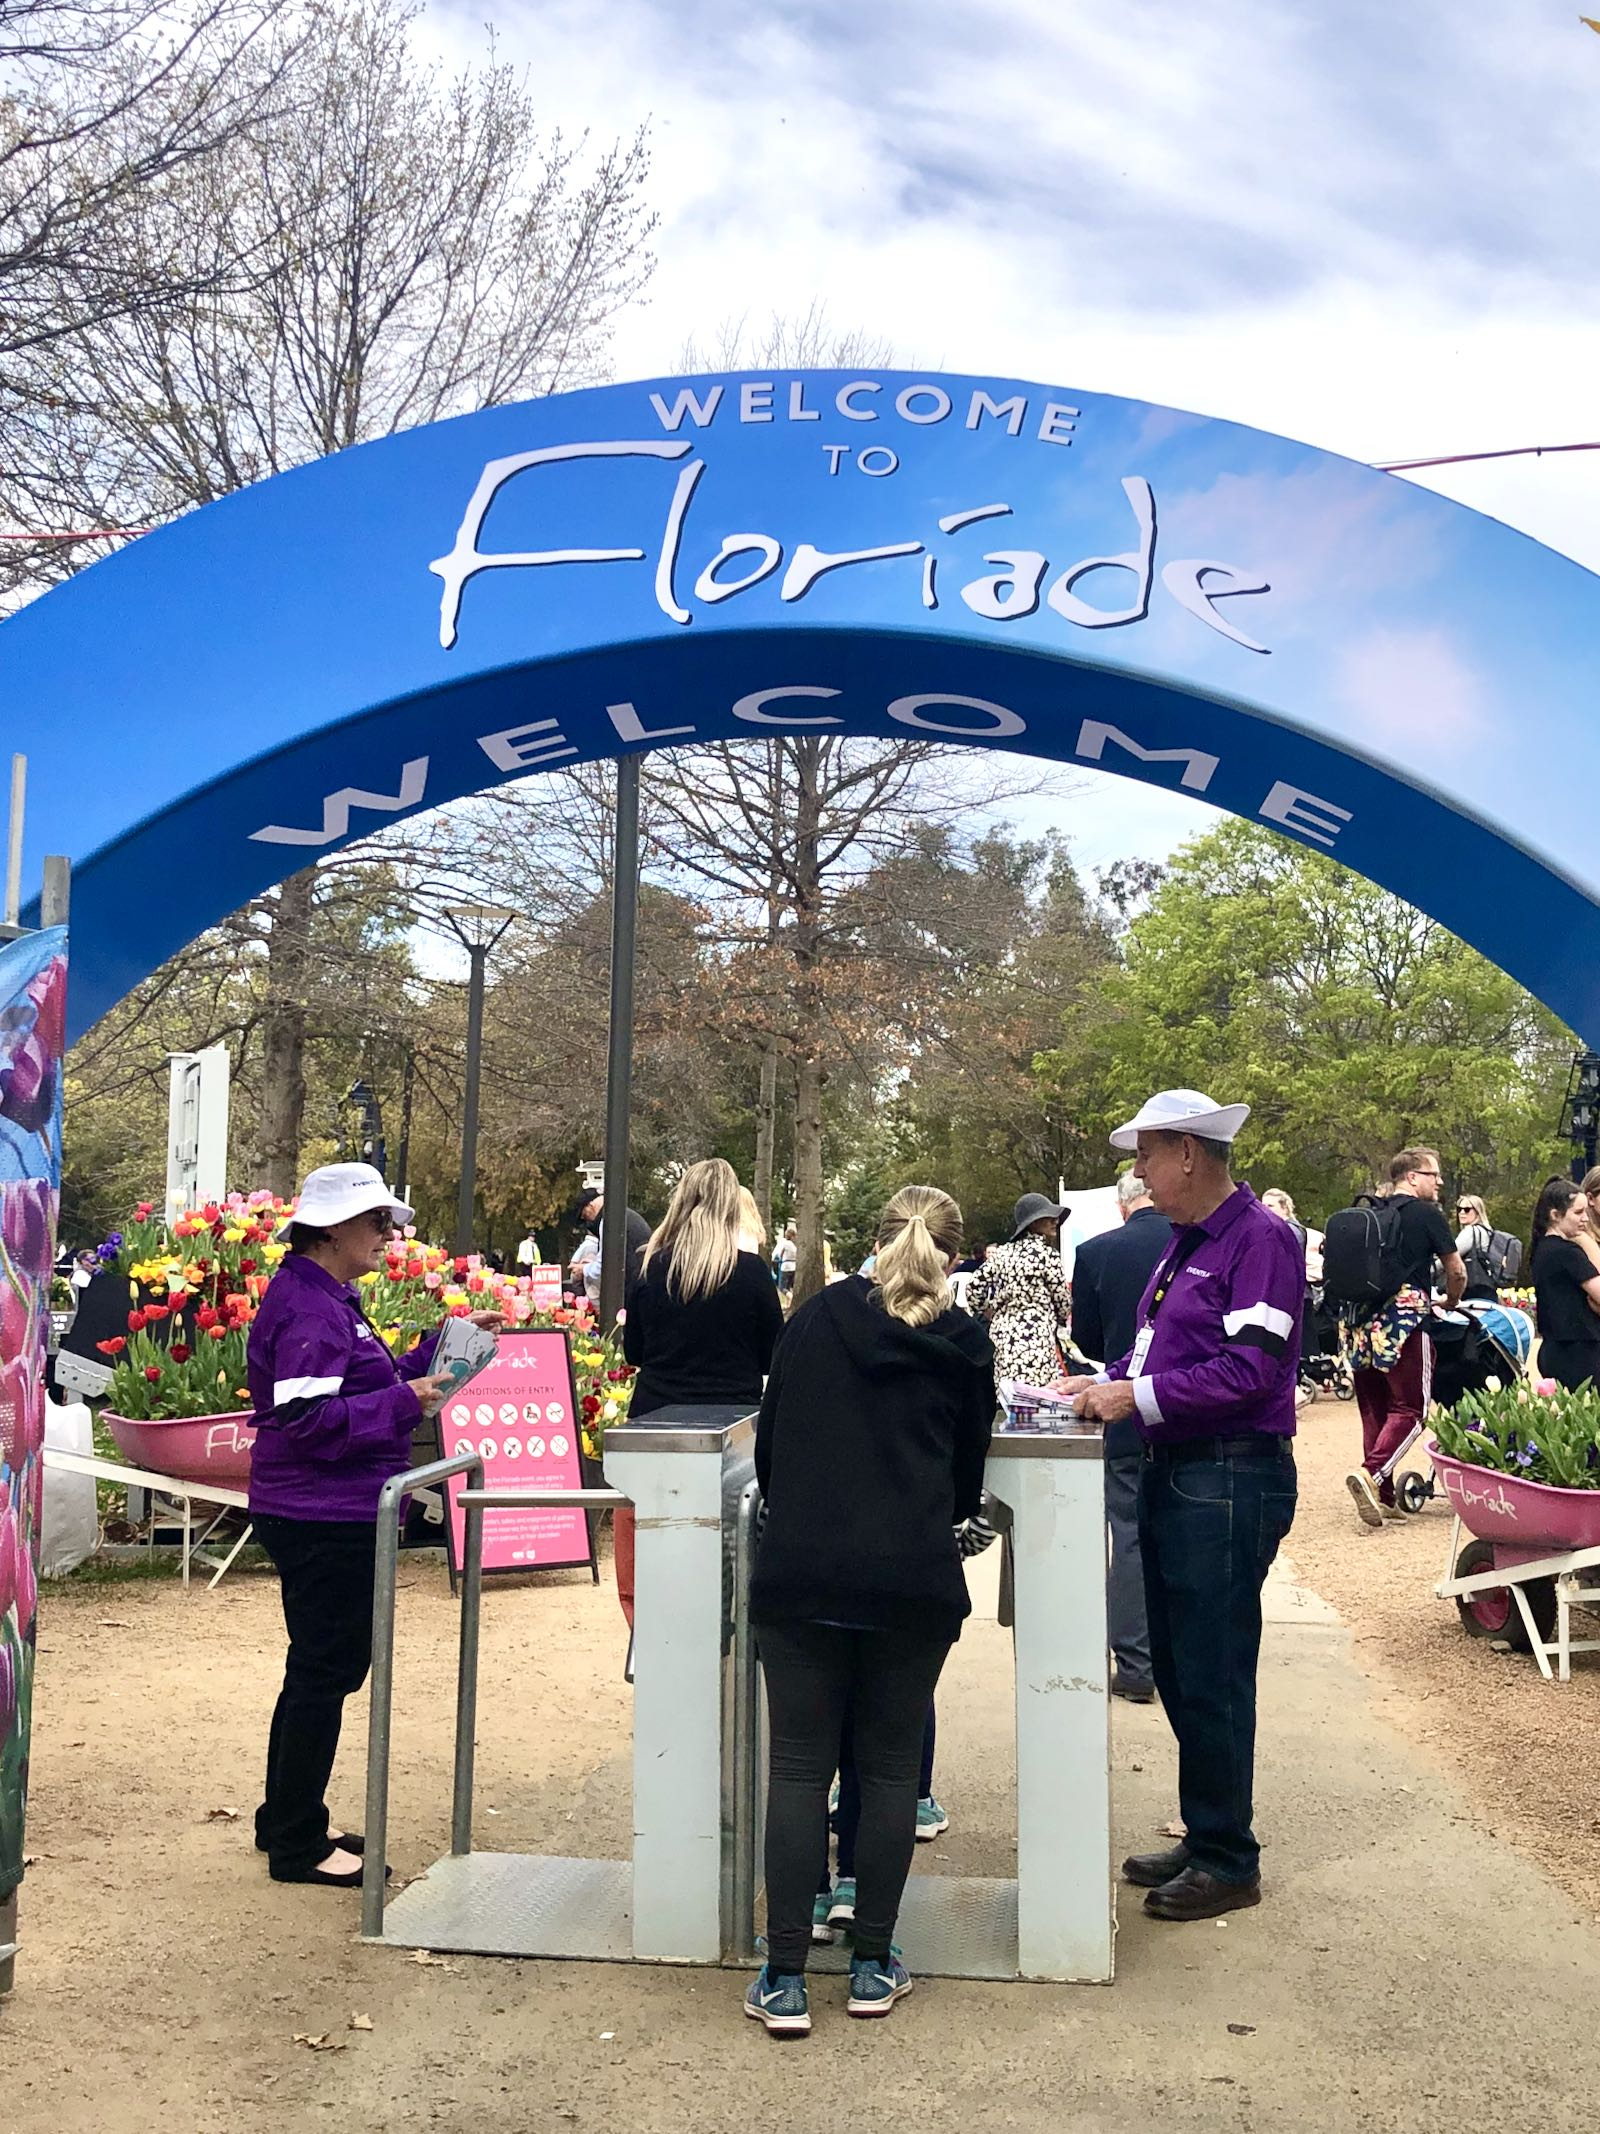 Welcome To Floriade